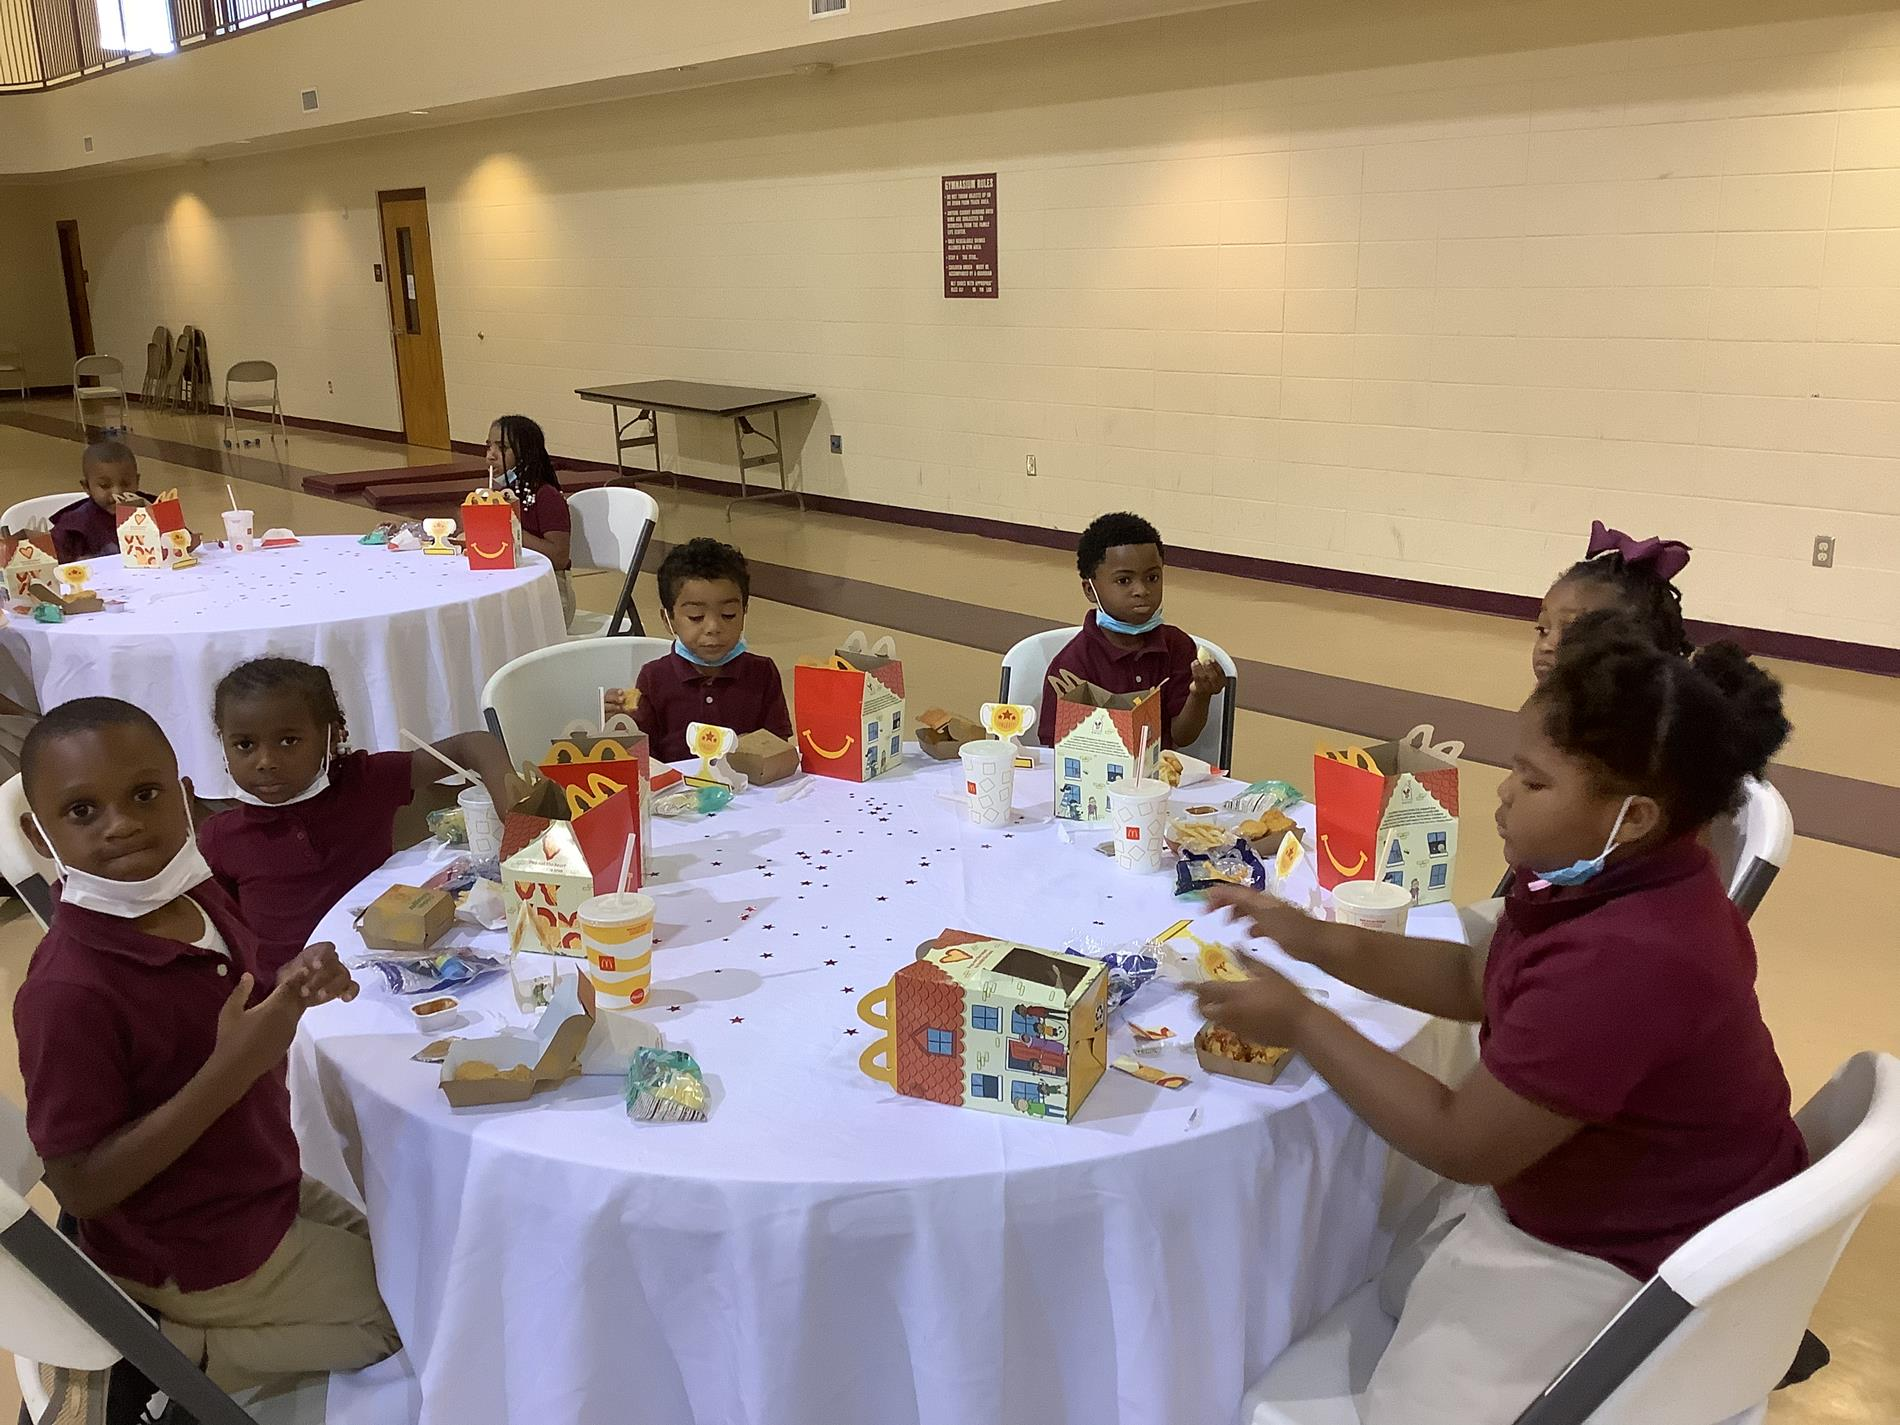 Special Lunch with Students who met their AR Goals